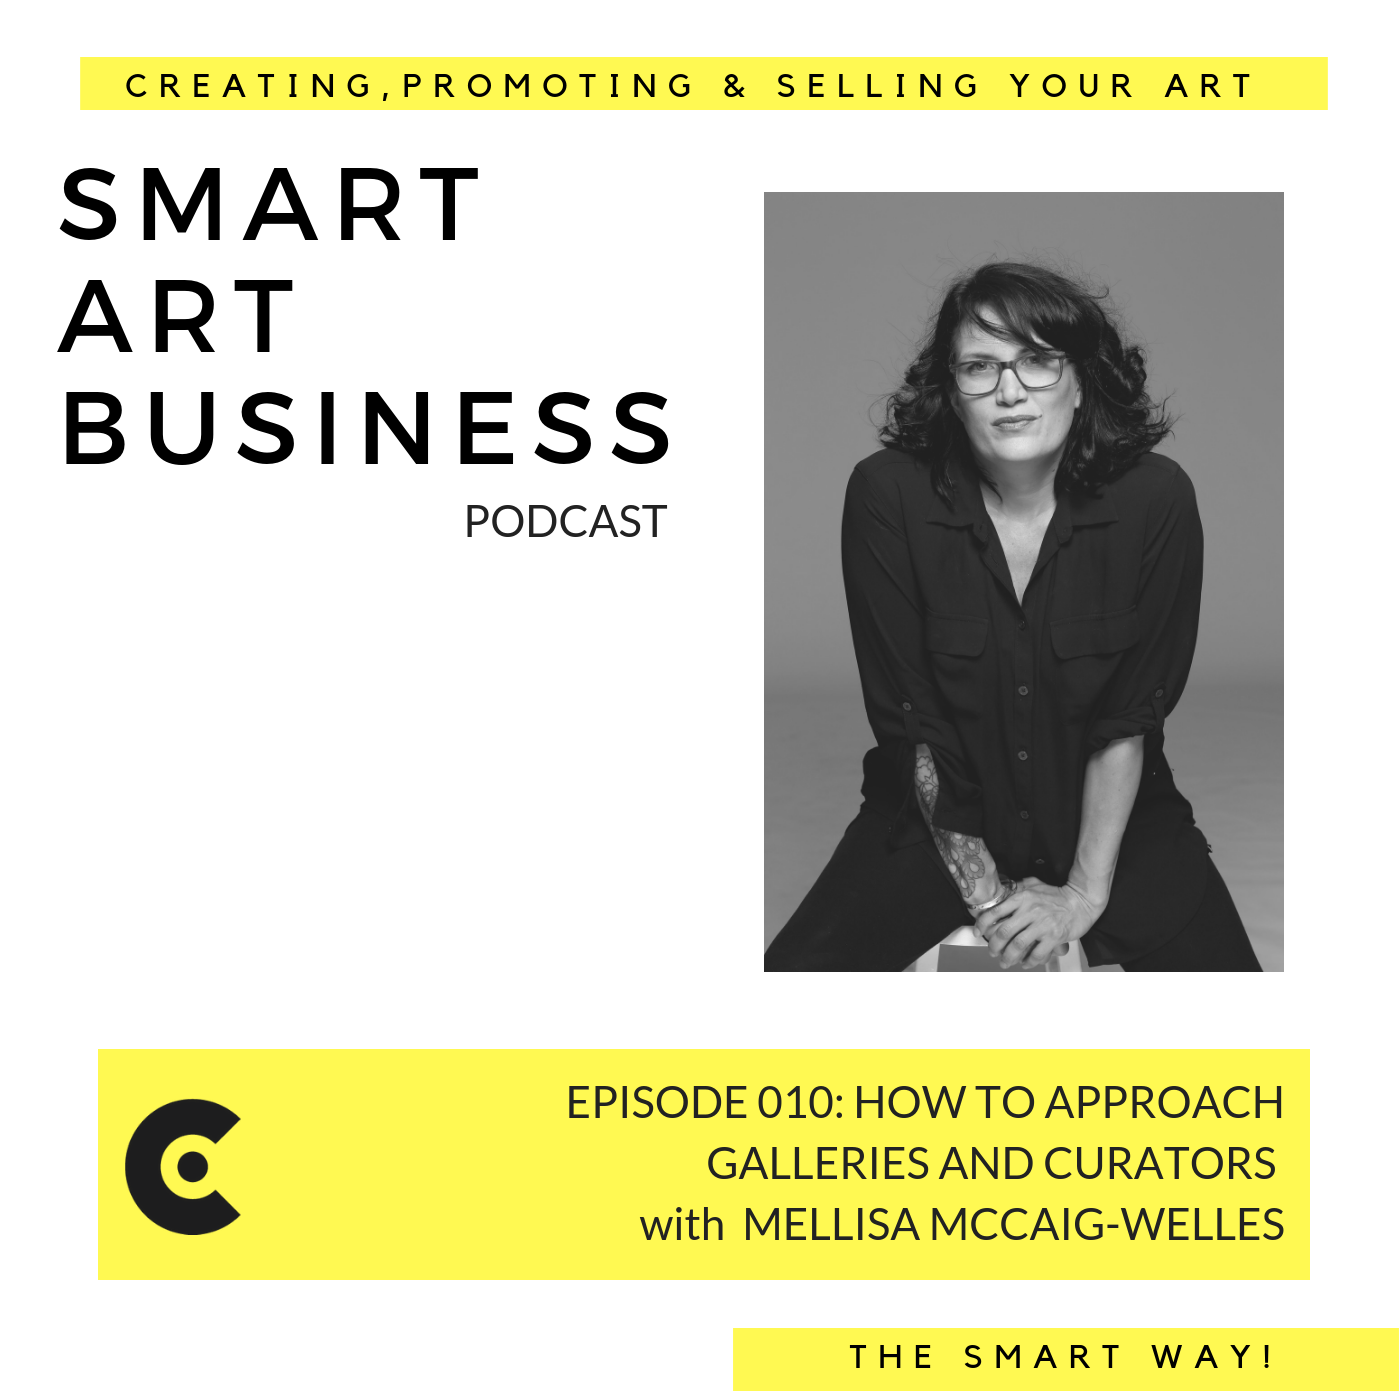 How to Approach Galleries and Curators with Melissa McCaig-Welles